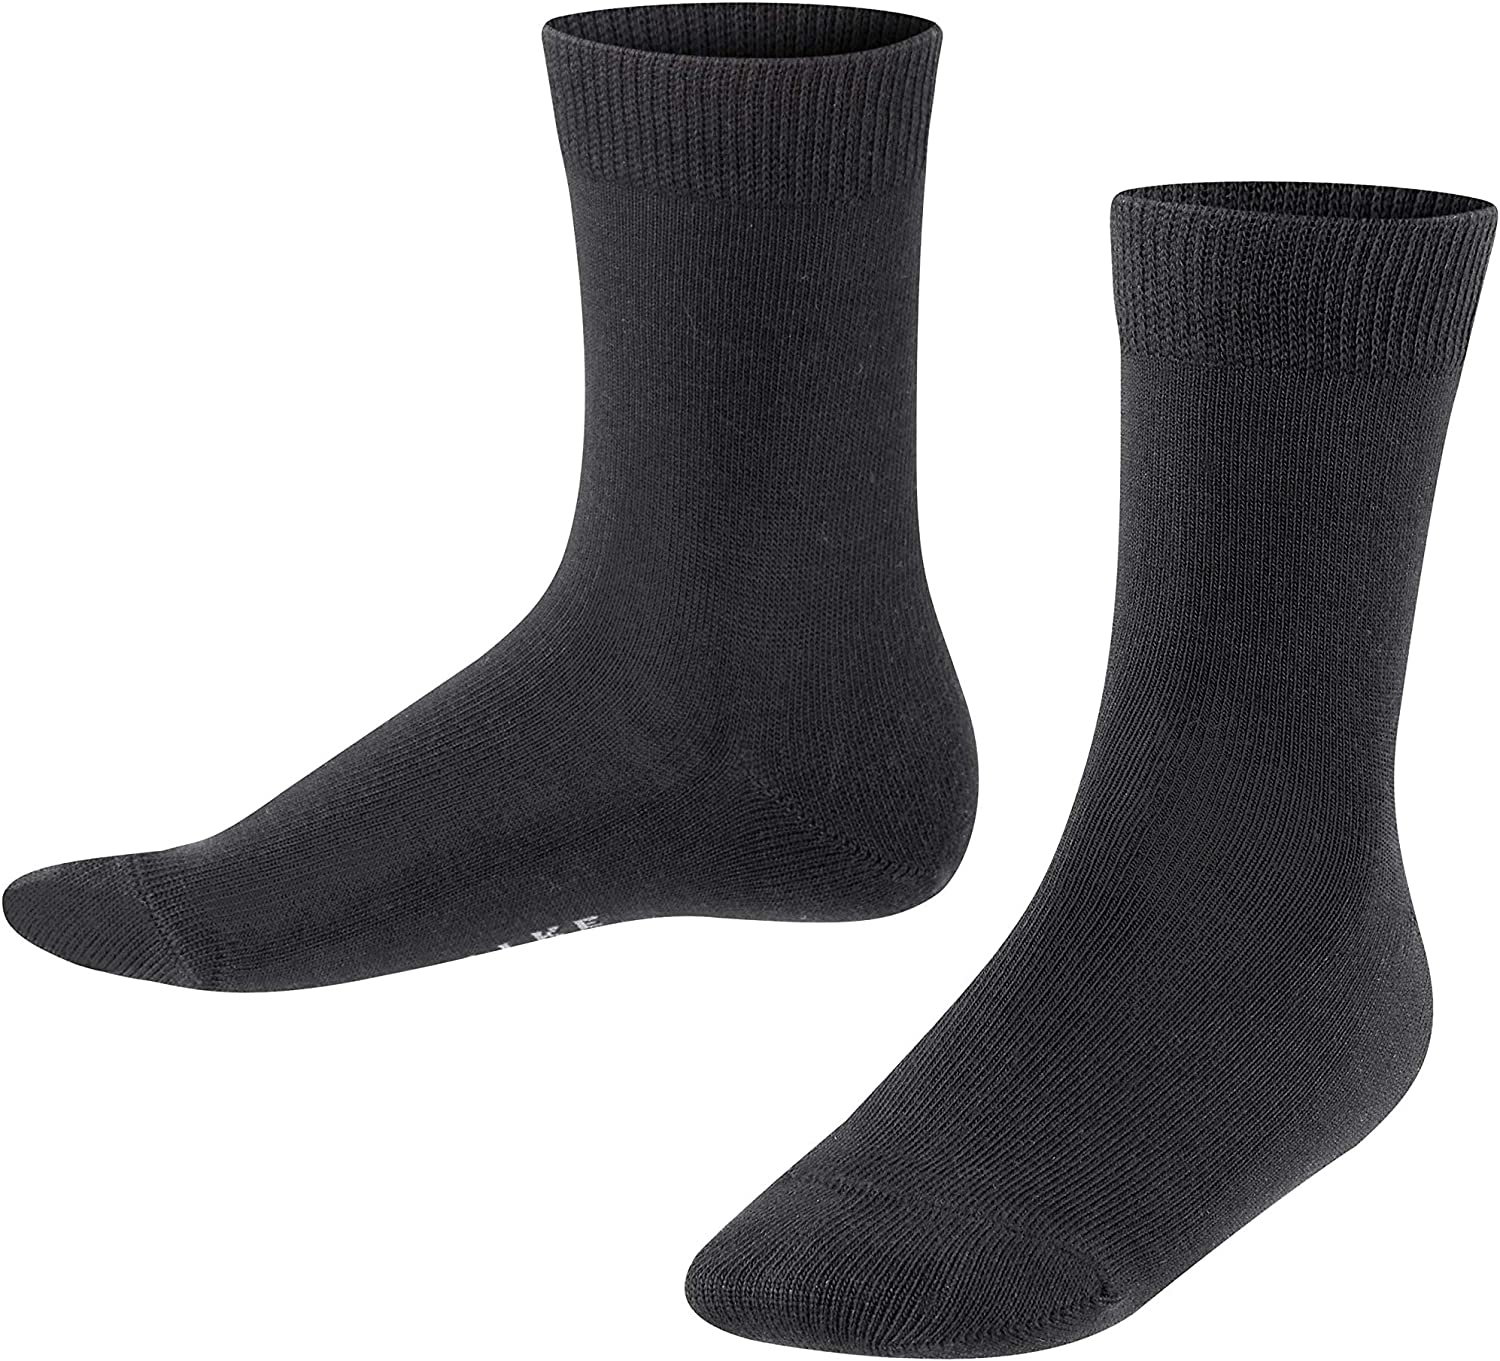 FALKE Unisex-Child Family Translated Casual Sock Col Multiple Weekly update 94% - Cotton